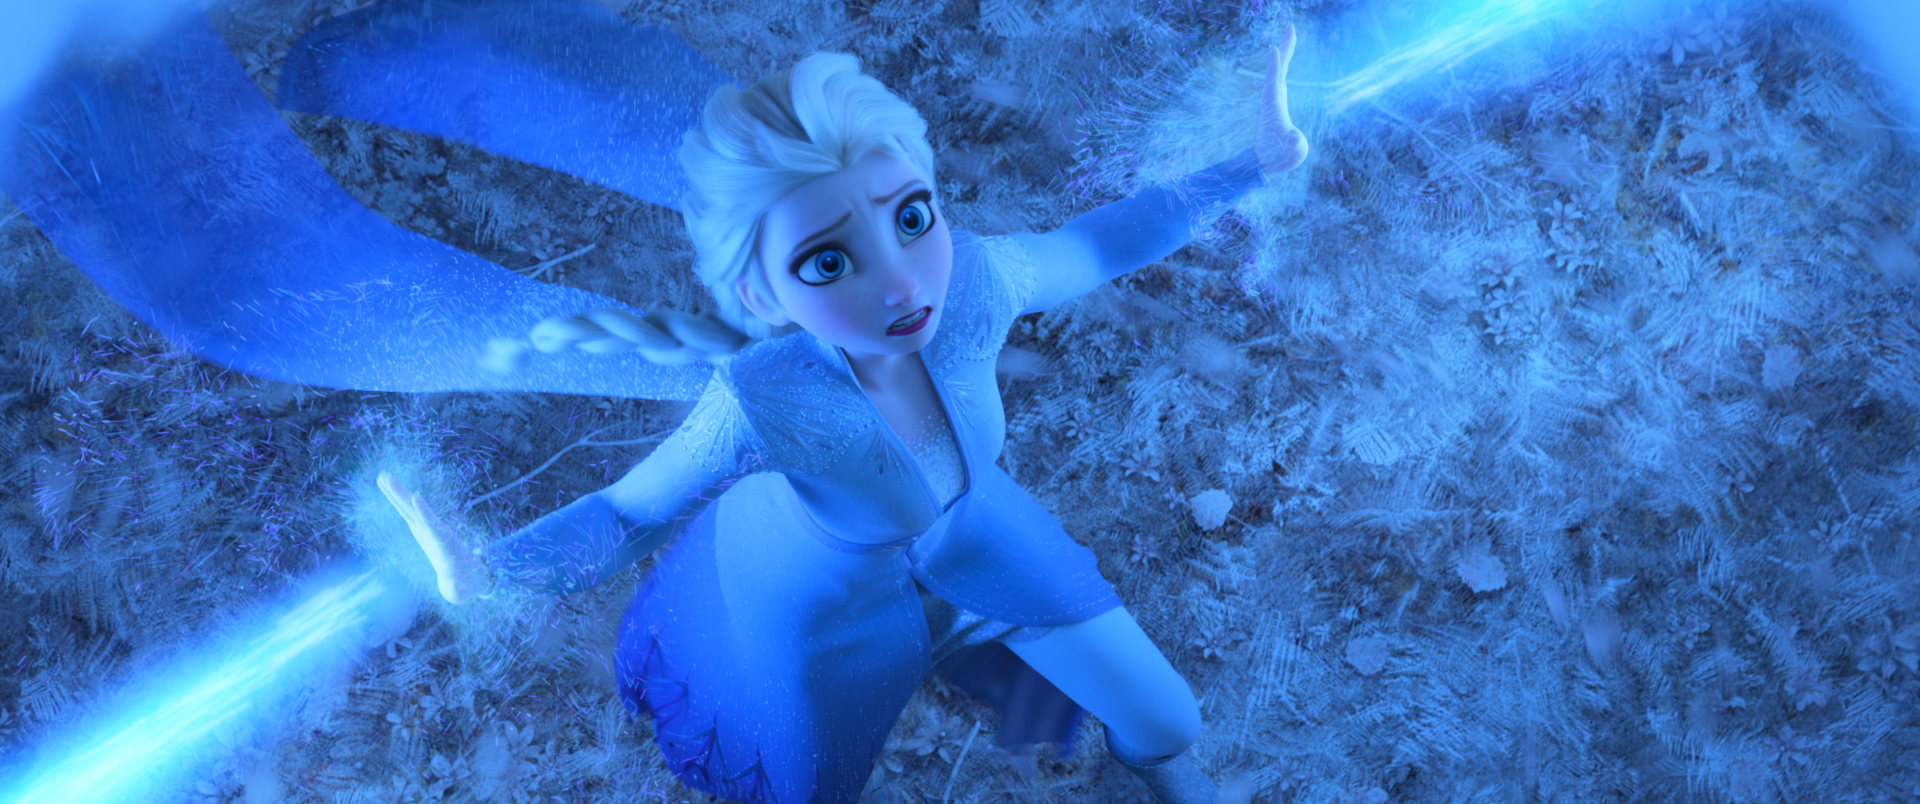 Seen from above, Queen Elsa looks frightened while using her ice powers to hold back an unseen enemy in Frozen II.